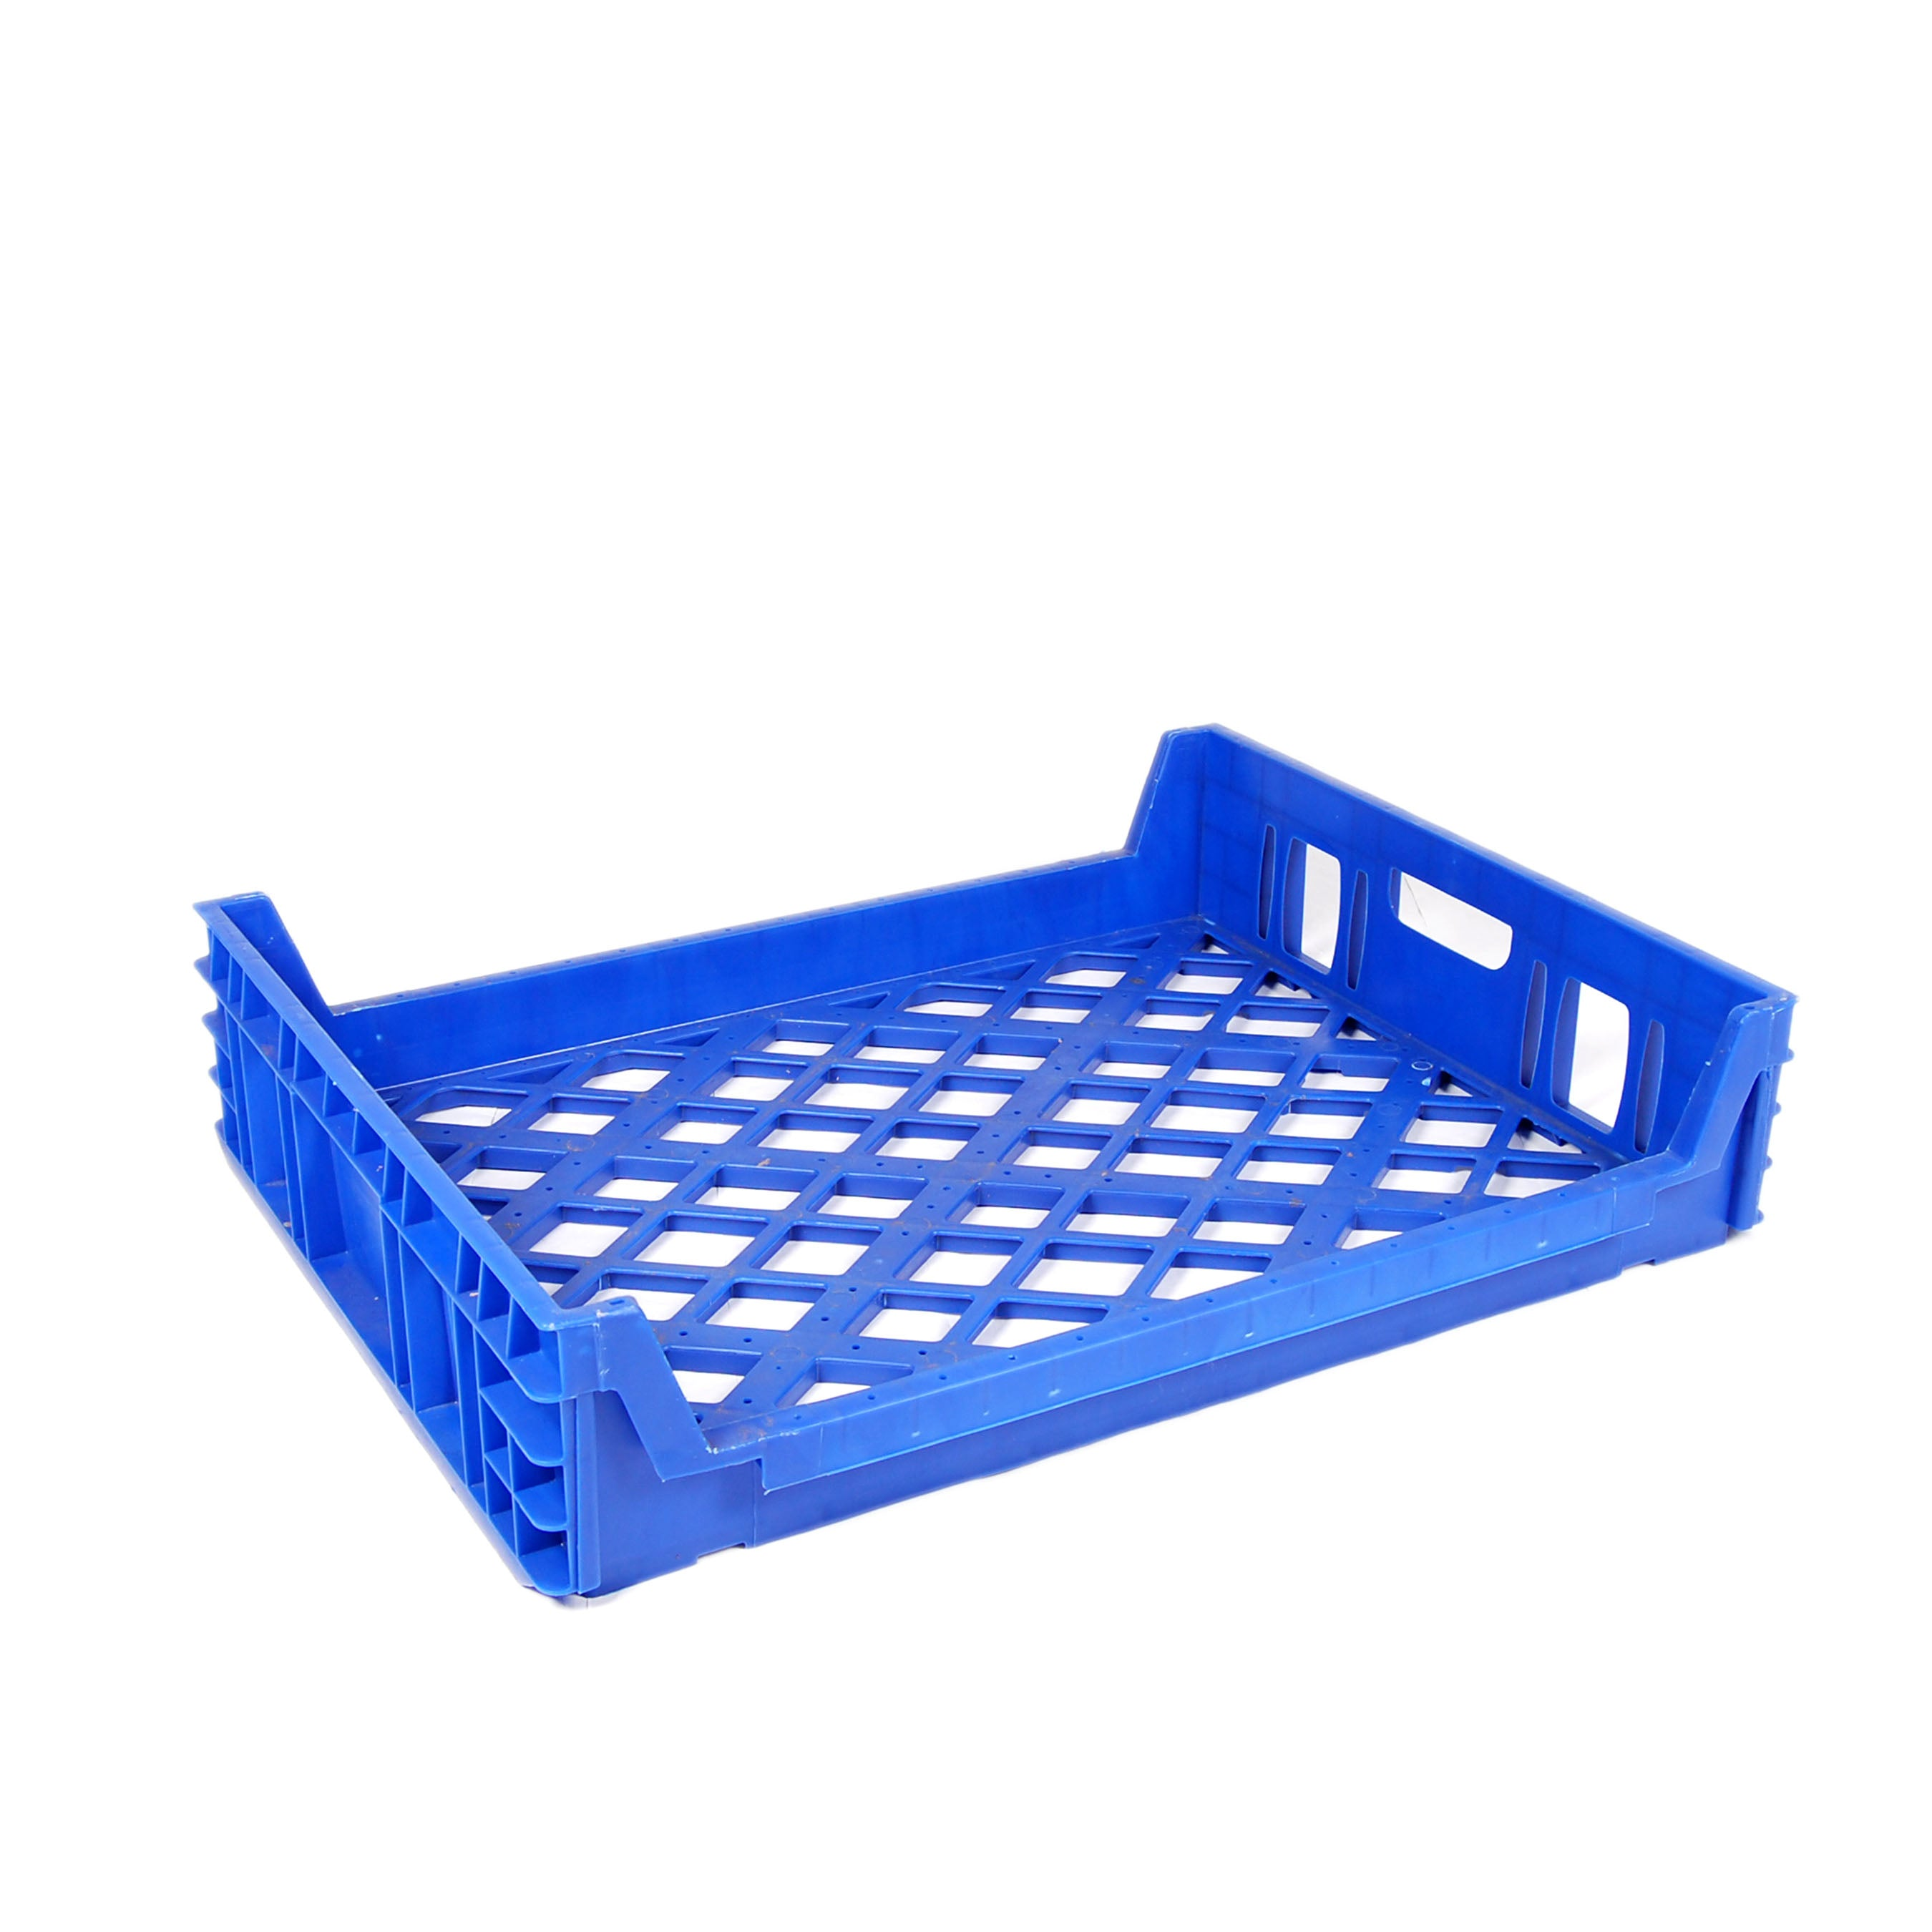 Blue bread tray, stores 15 loafs, front 3/4 view